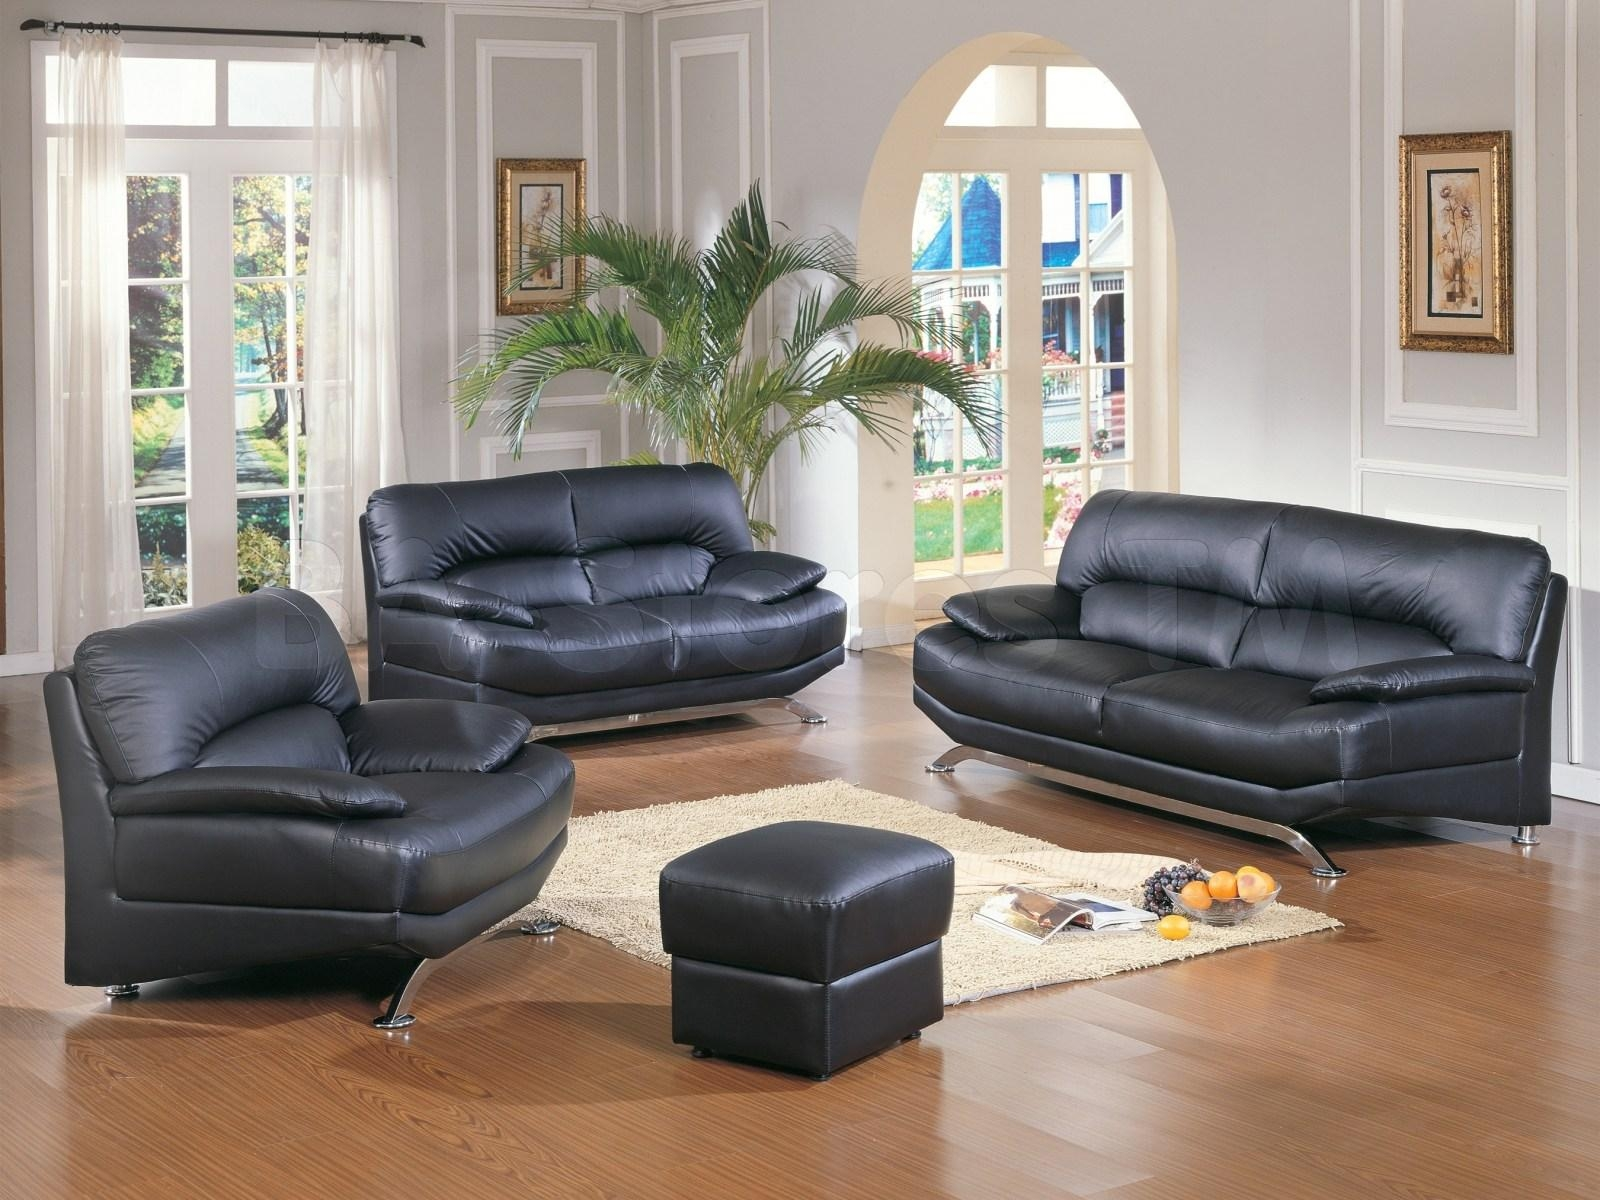 ▻ Sofa : 1 Wonderful Black Leather Sofa Living Room Ideas Sath19 With Regard To Black Sofas For Living Room (Image 1 of 20)